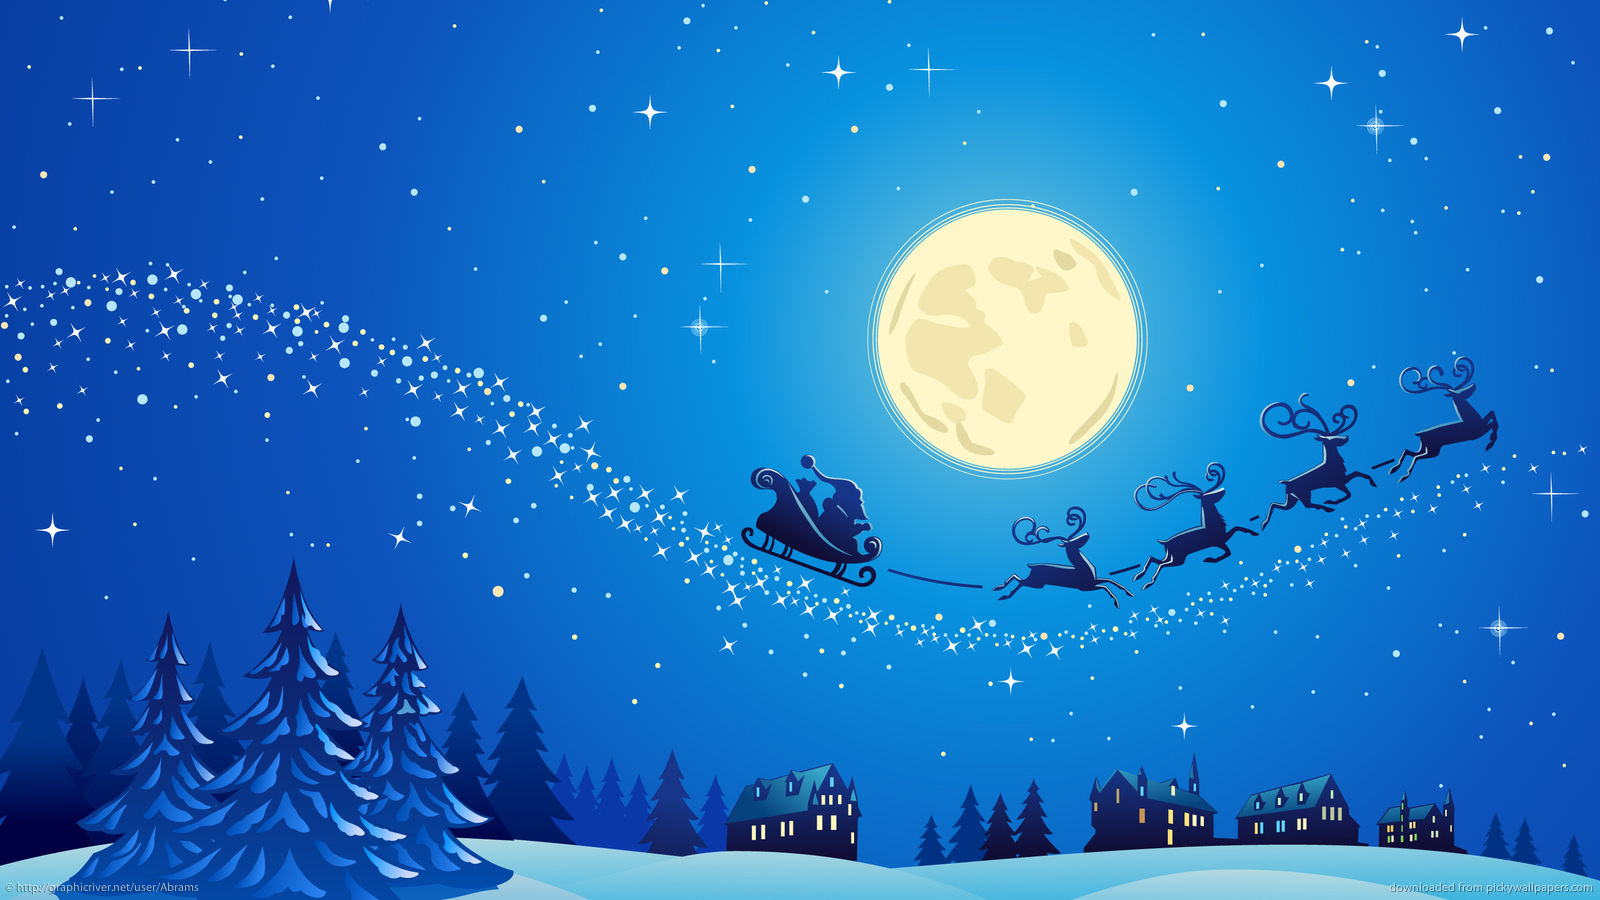 Download 1600x900 Santa Into The Winter Christmas Night 2 Wallpaper 1600x900